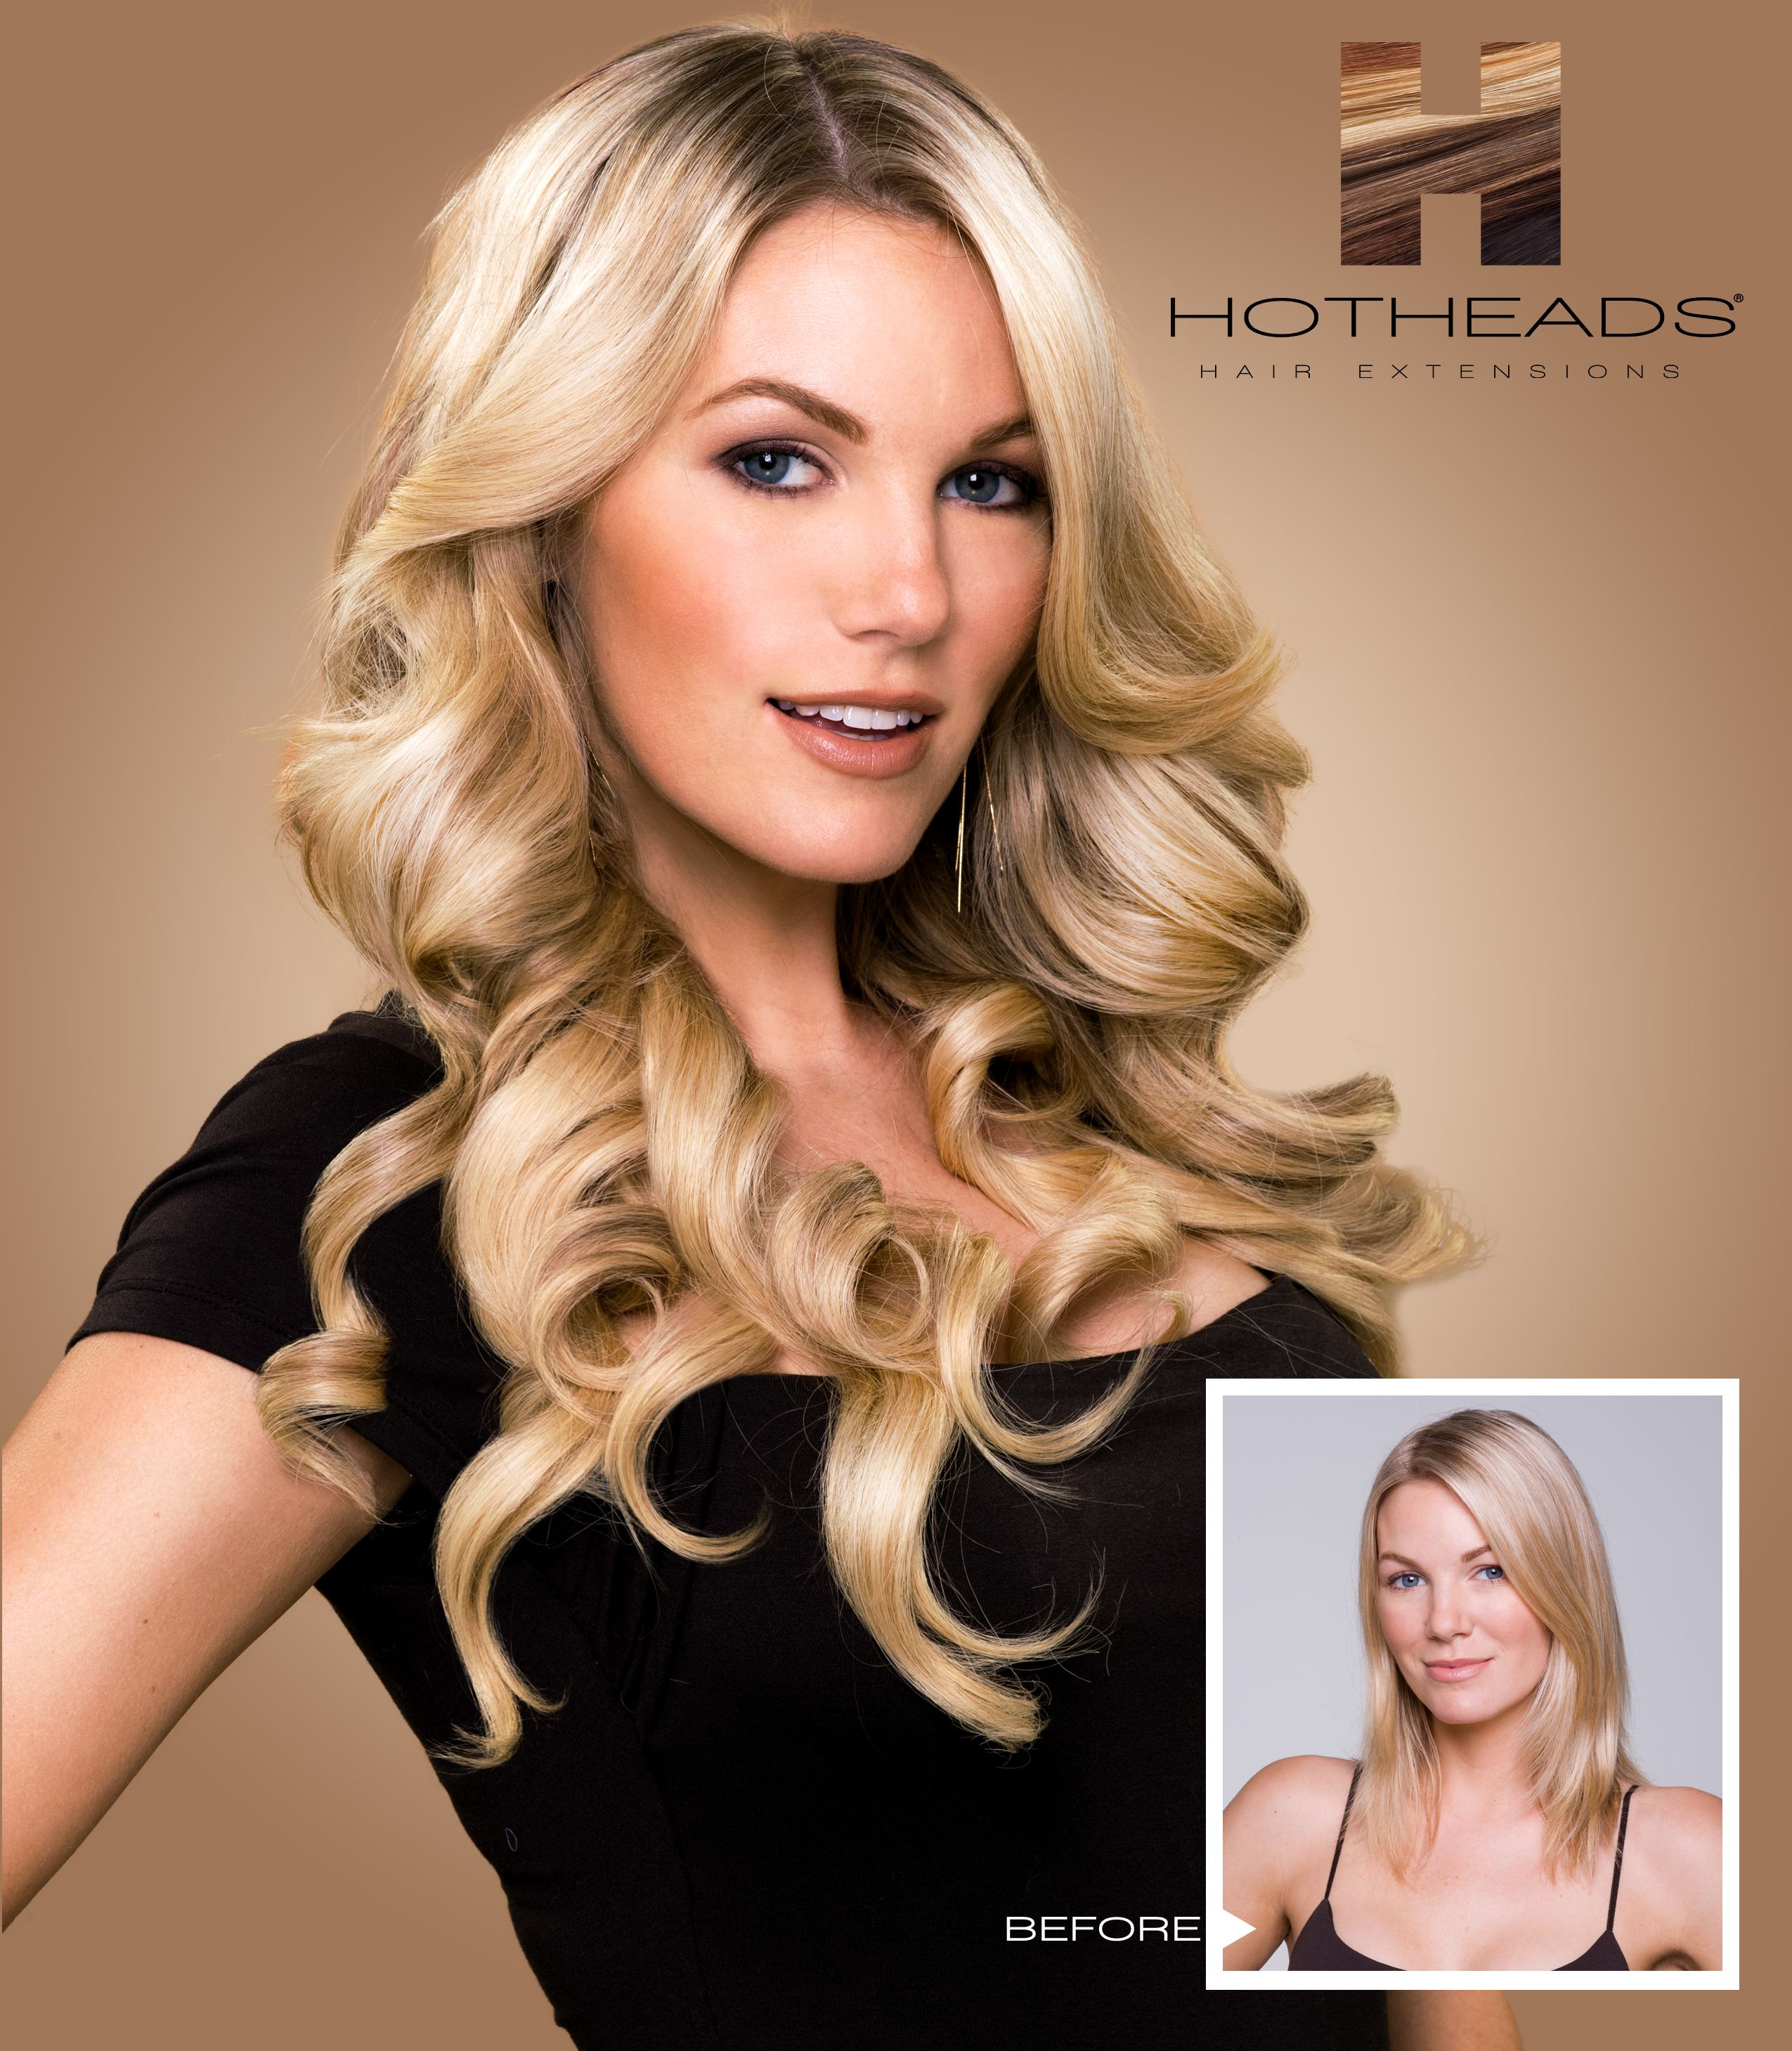 Volume Length Color Effects With Hotheads Hair Extensions Becky